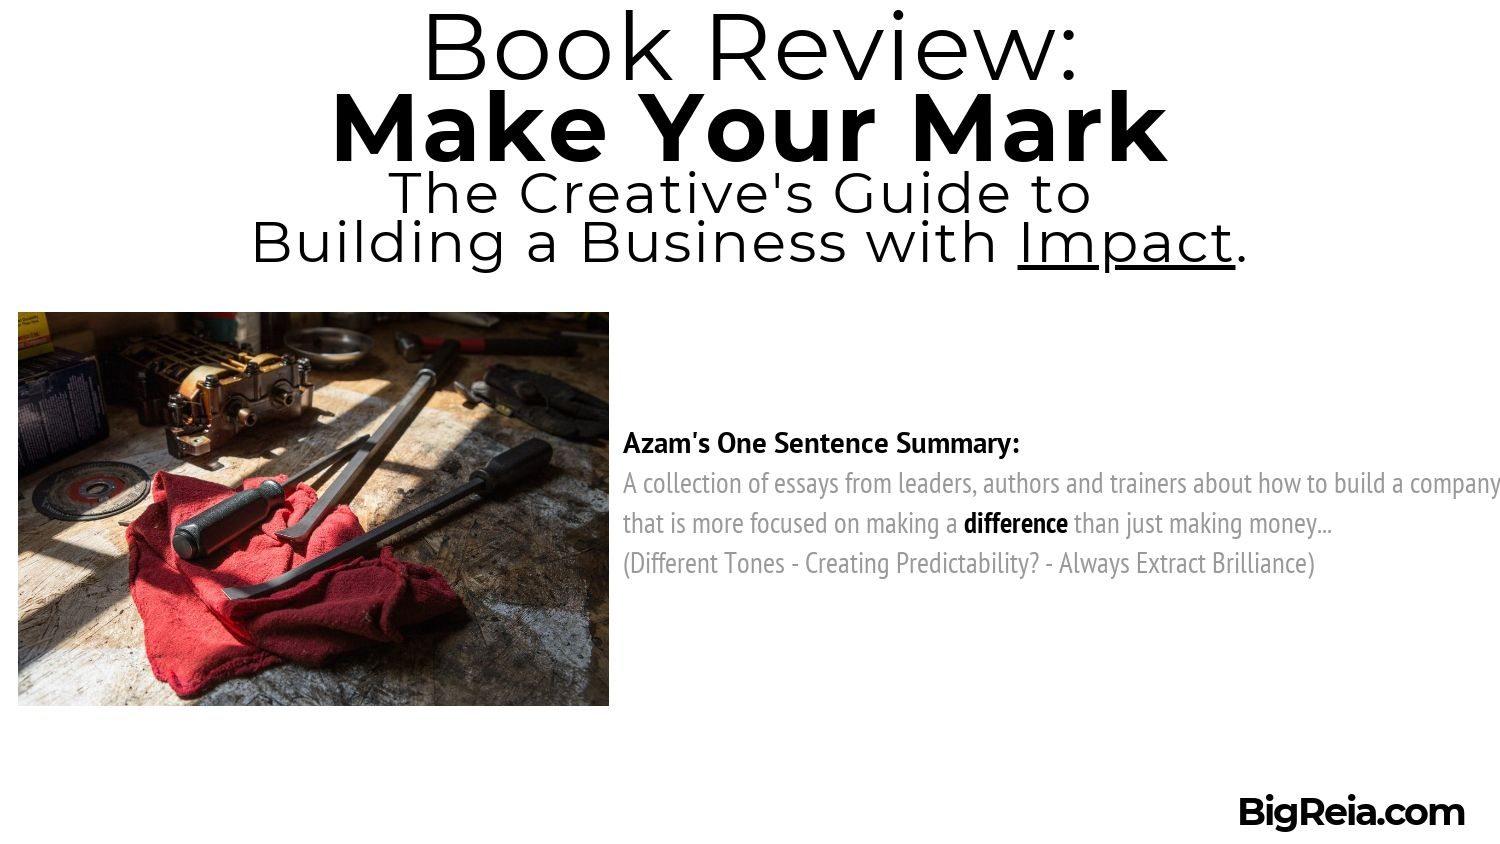 Book Review Make Your Mark one sentence summary